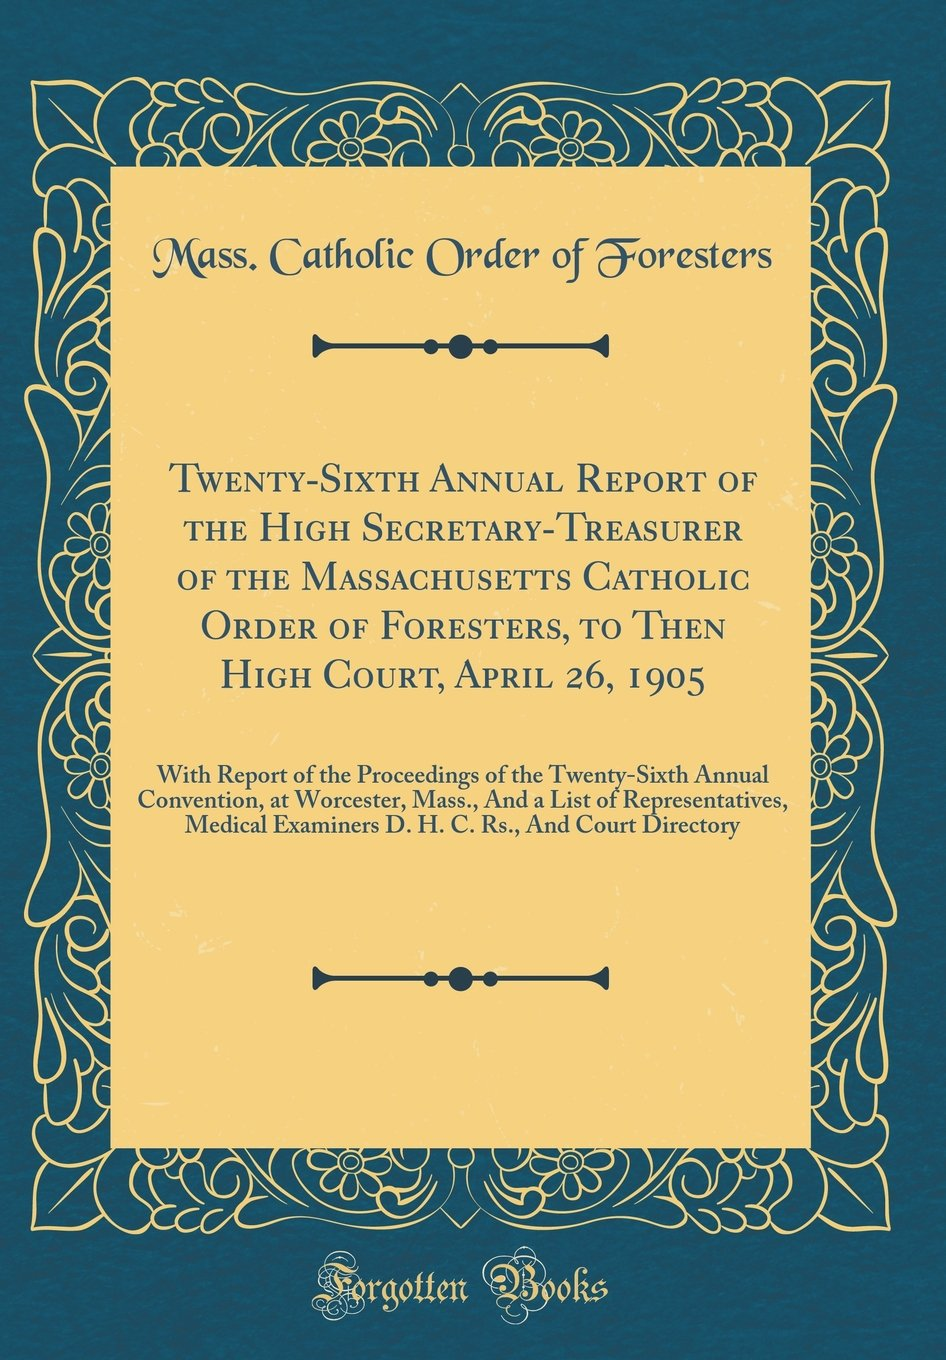 Twenty-Sixth Annual Report of the High Secretary-Treasurer of the Massachusetts Catholic Order of Foresters, to Then High Court, April 26, 1905: With ... at Worcester, Mass., And a List of Repre PDF